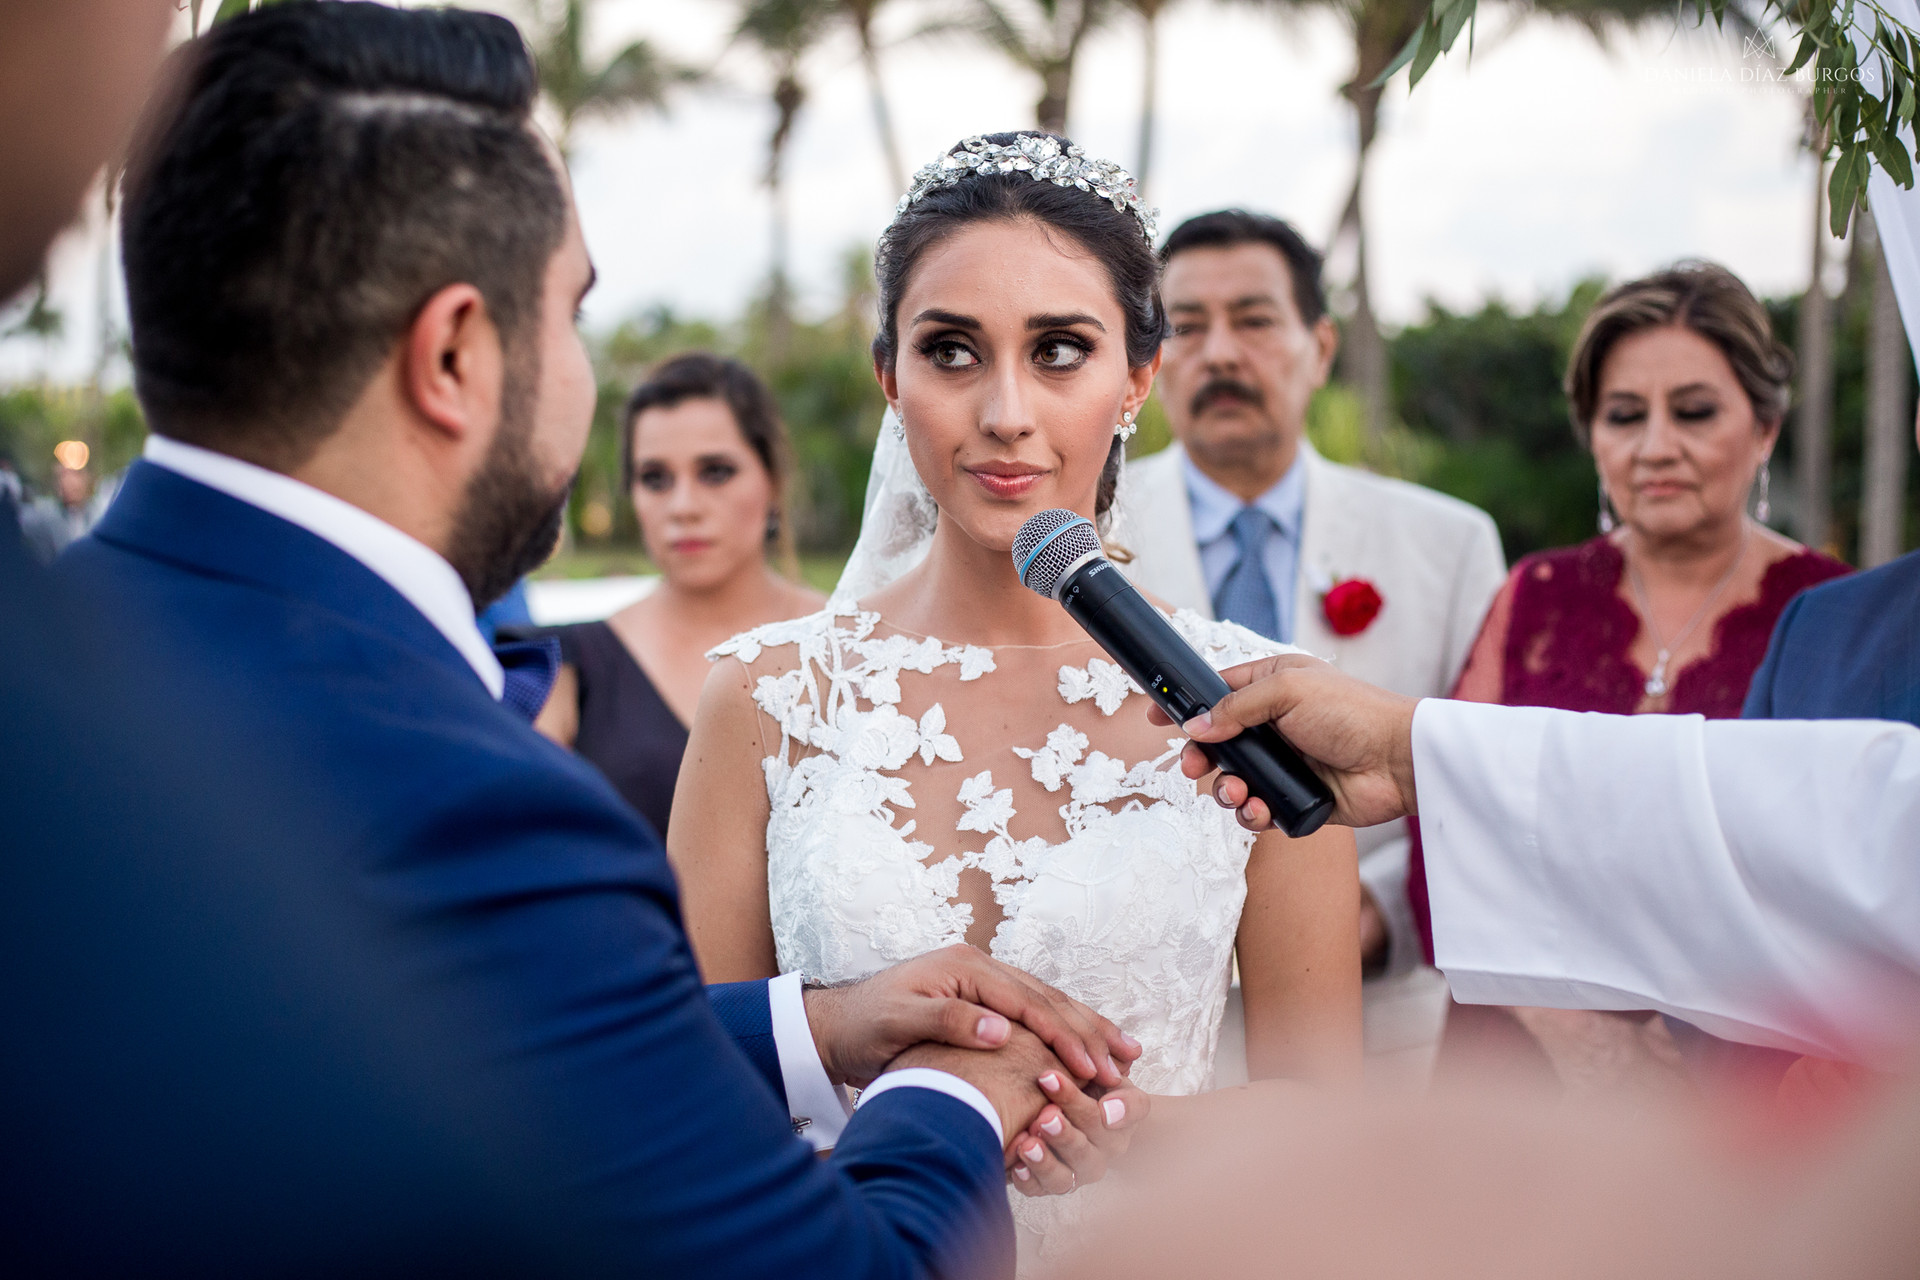 Zuza+Sergio-Wedding-LD-195.jpg